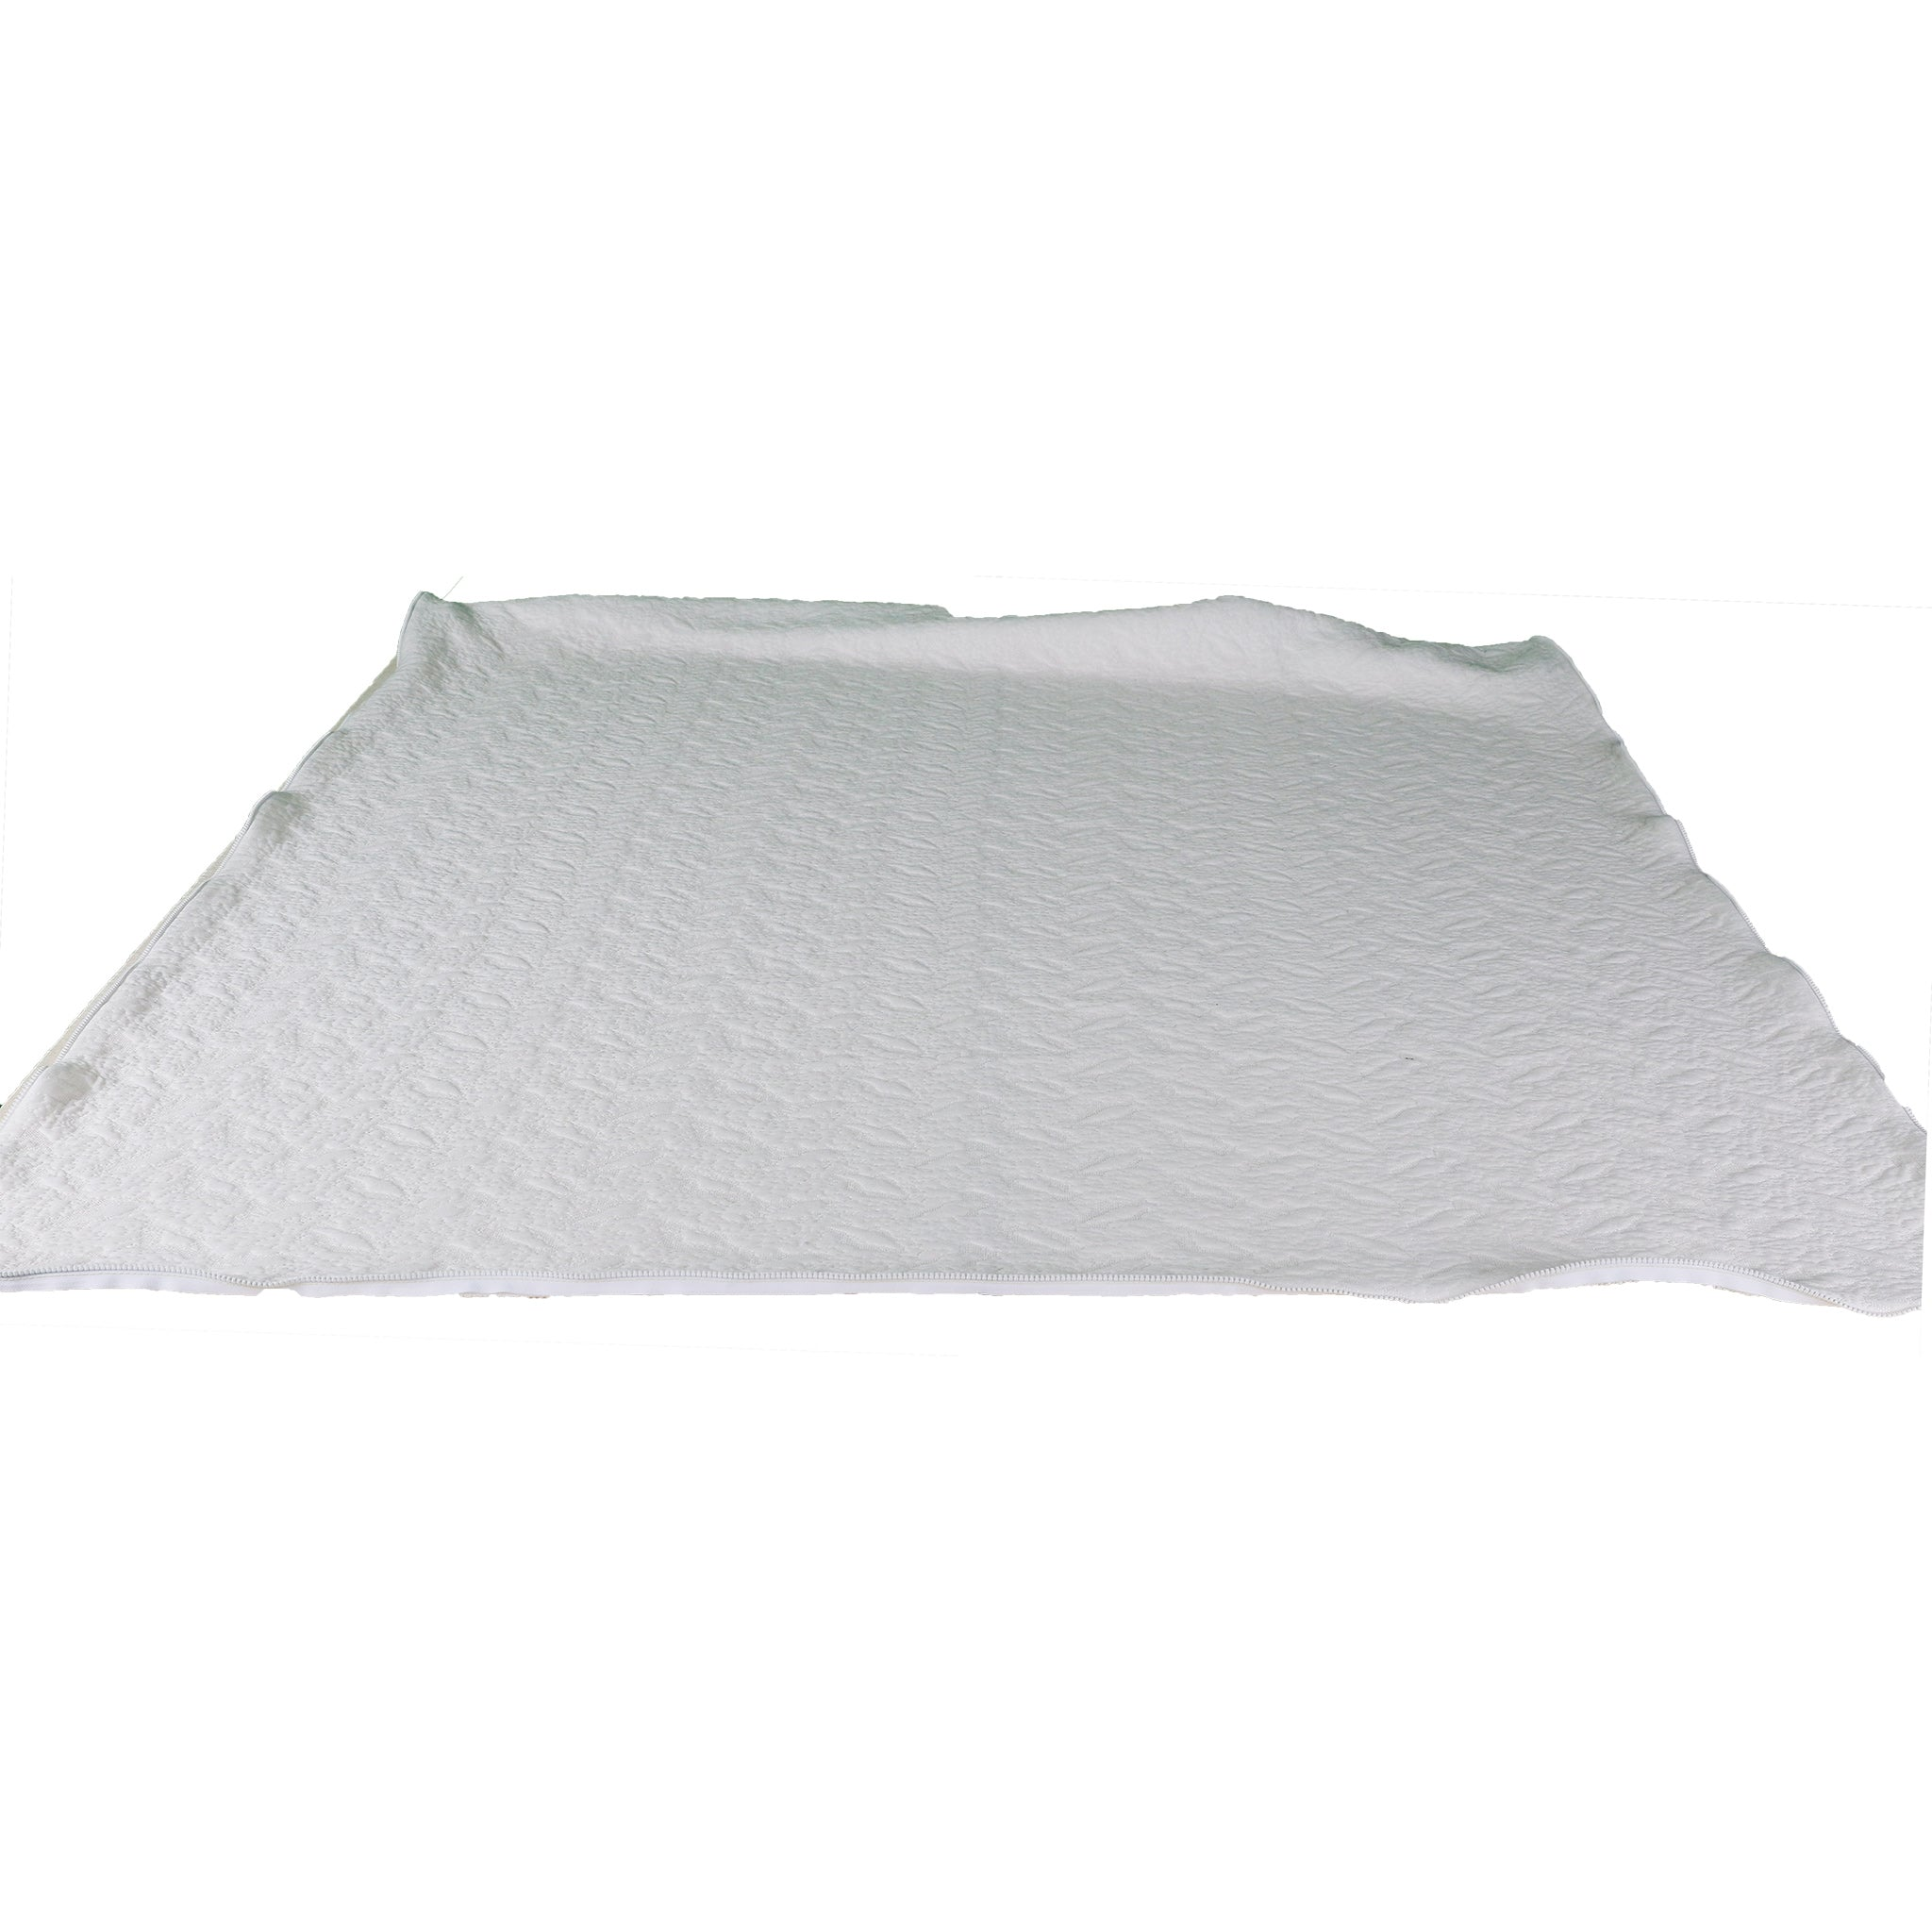 Zip-on Designer Stretch Cover for Softside Waterbeds - Sterling Sleep Systems